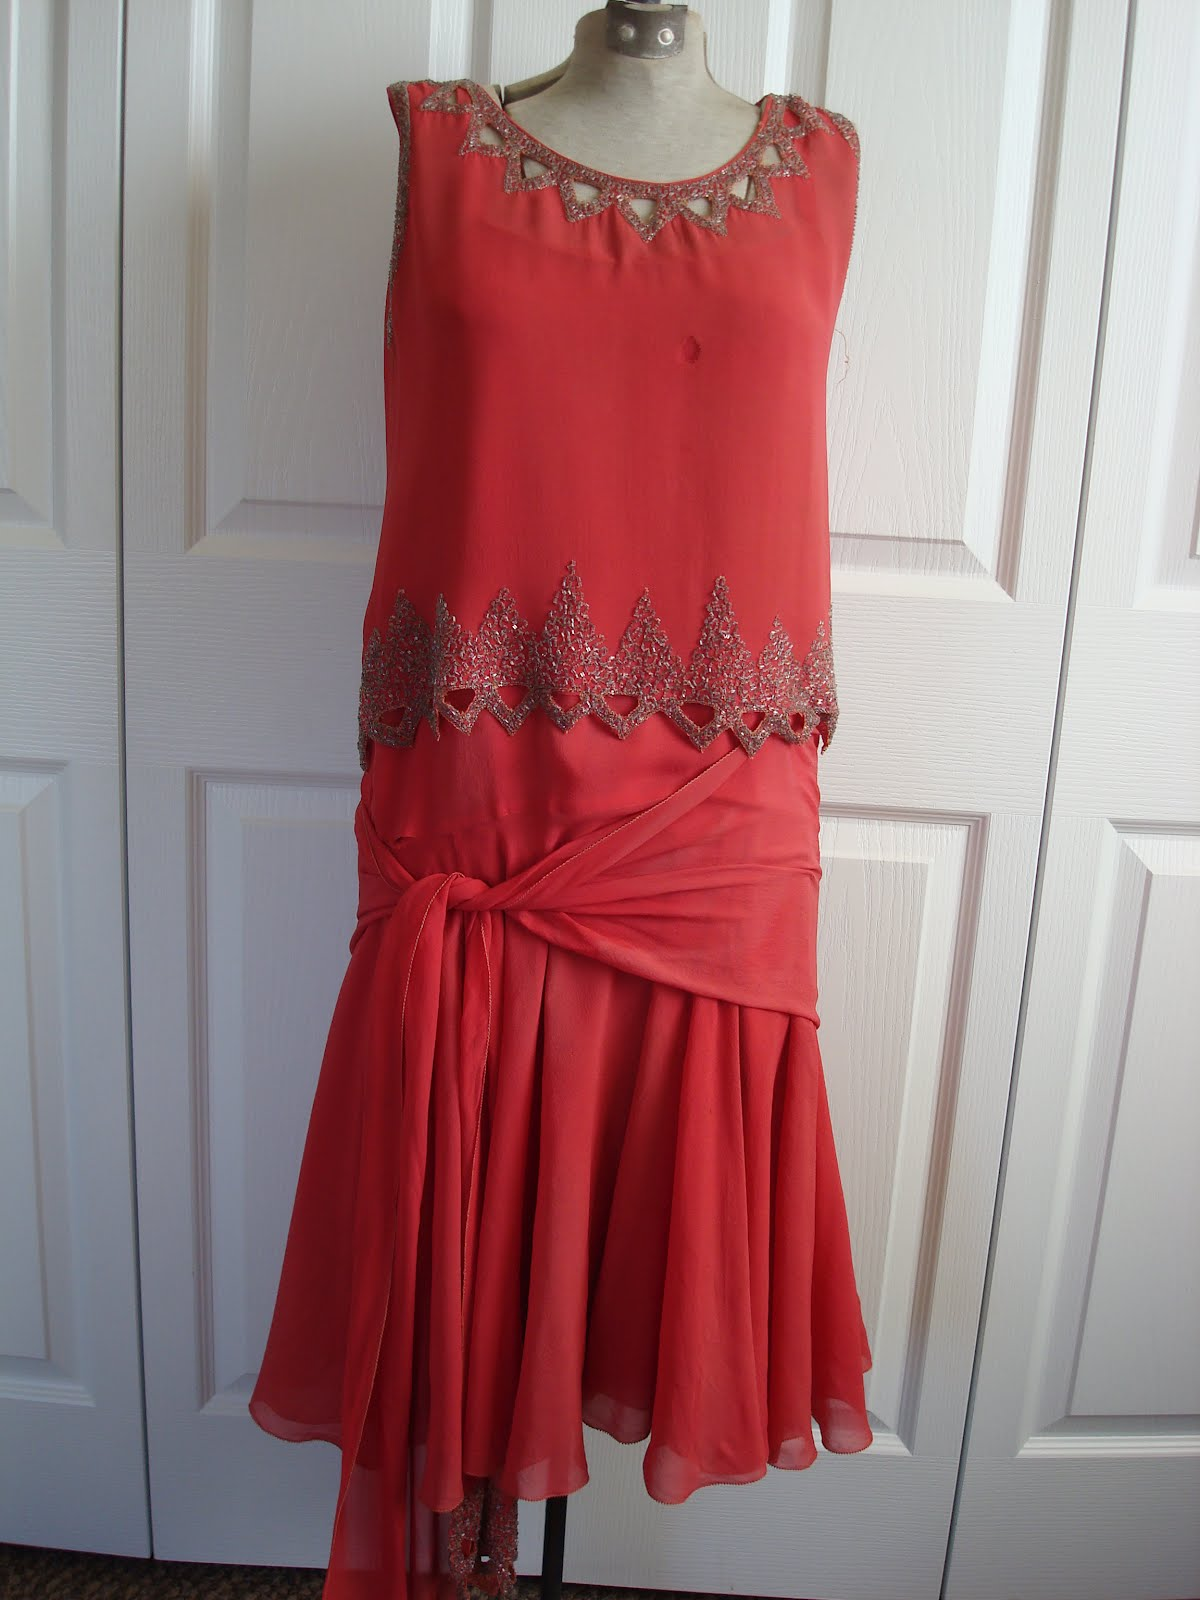 Displaying 18> Images For - Roaring 20s Dresses For Sale...